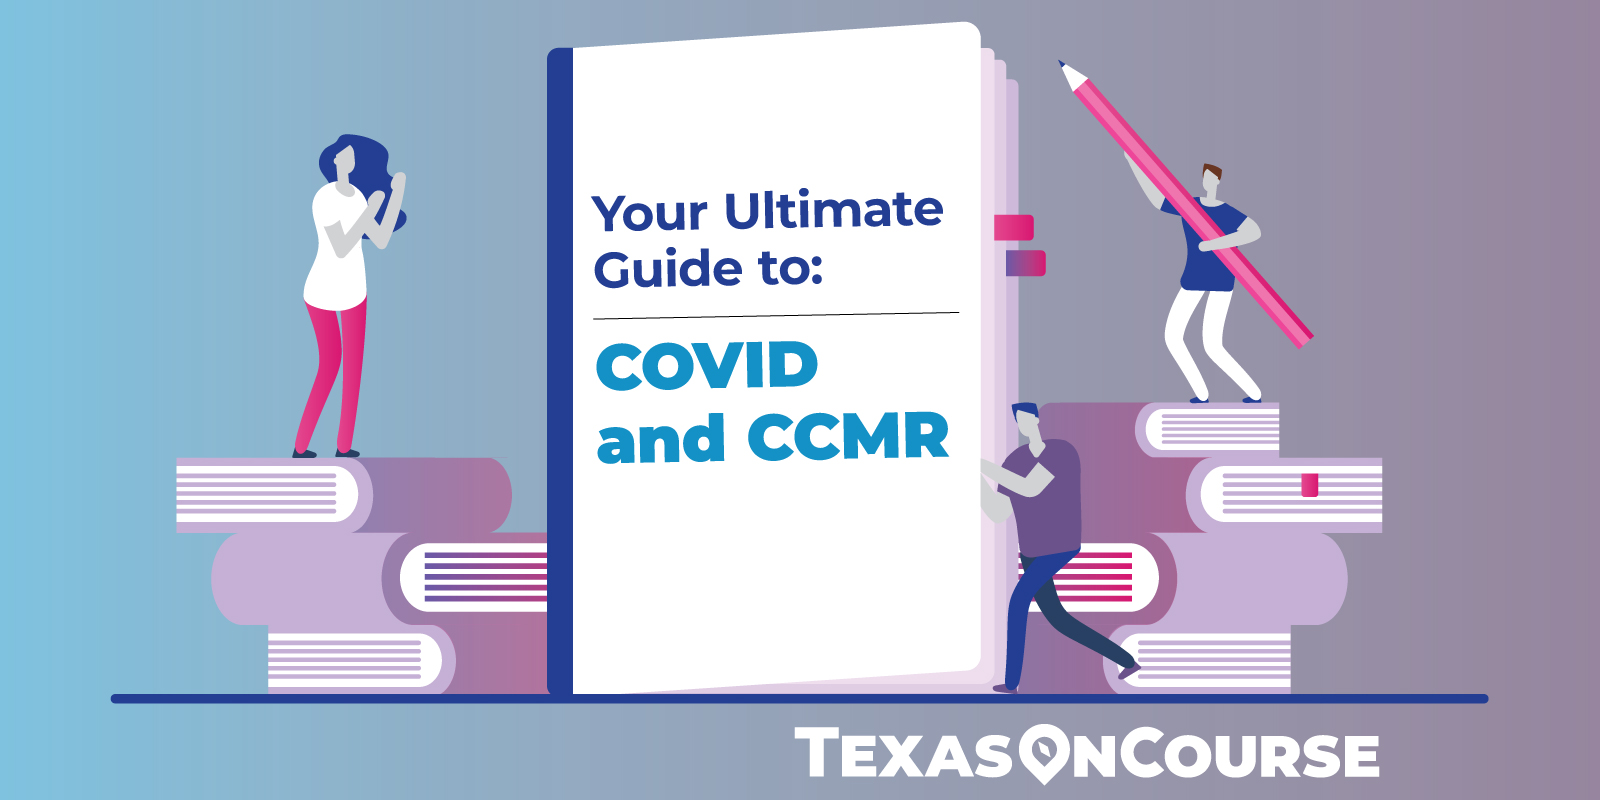 Your Ultimate Guide to COVID and CCMR